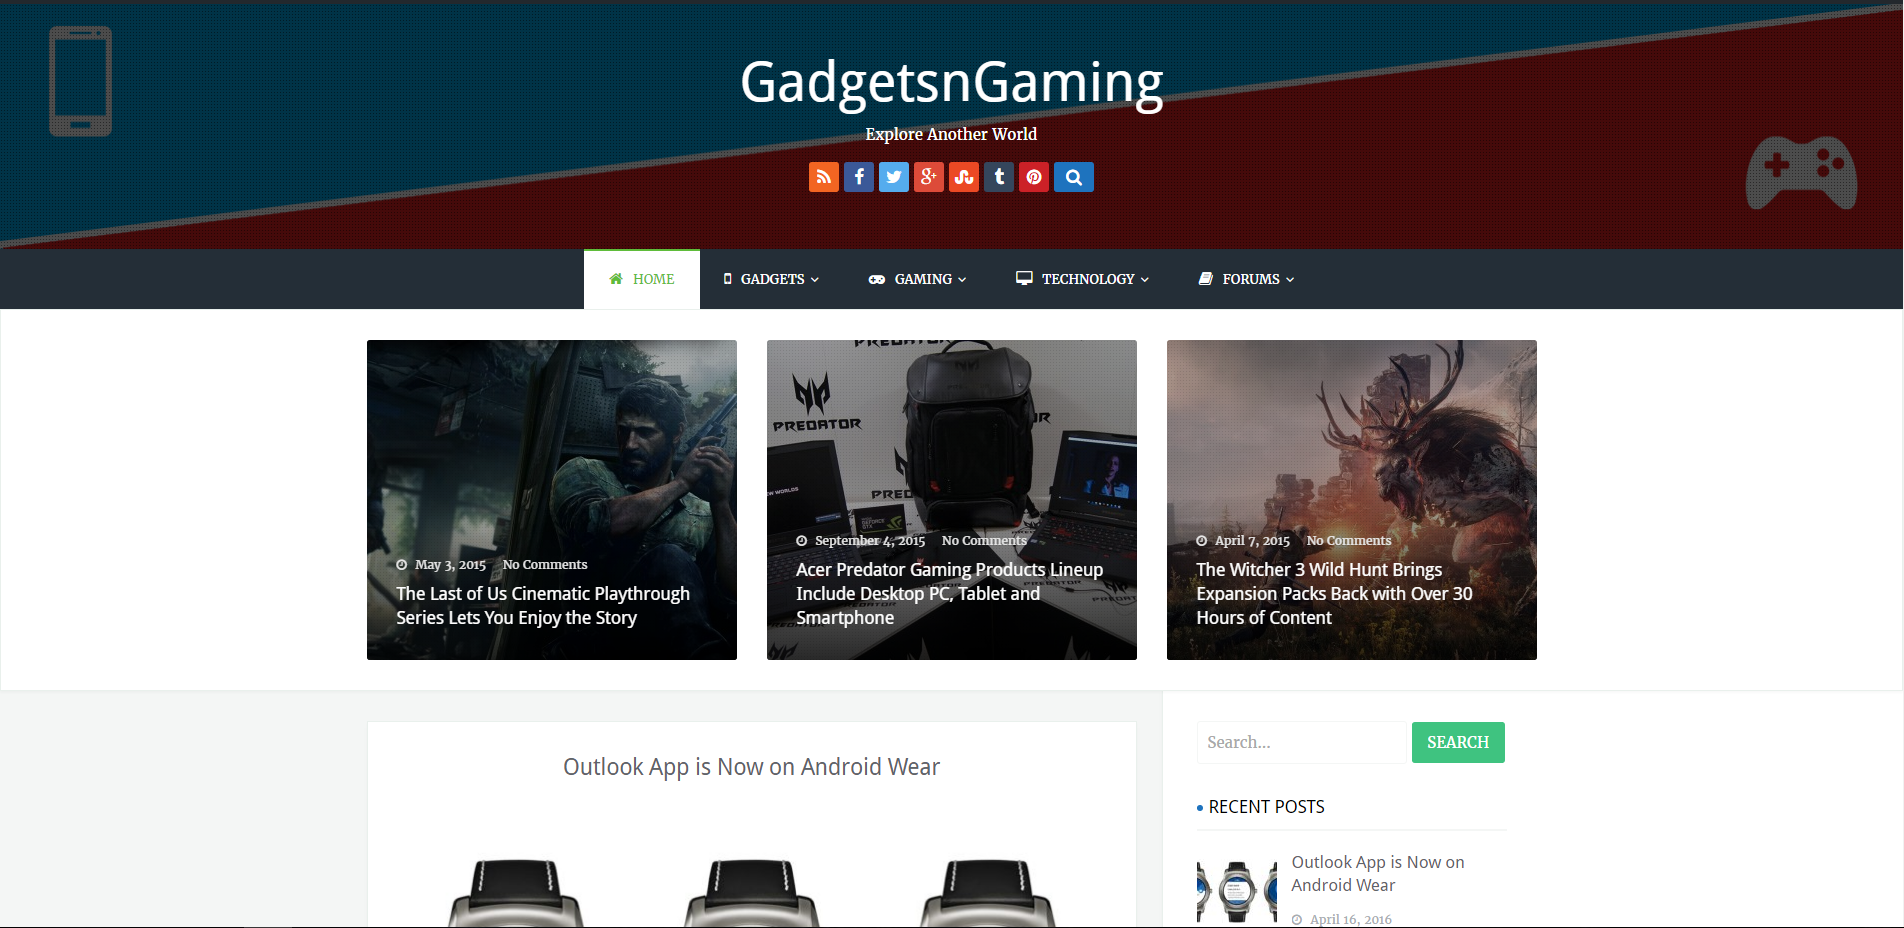 Professional Website Based on Gadgets and Games